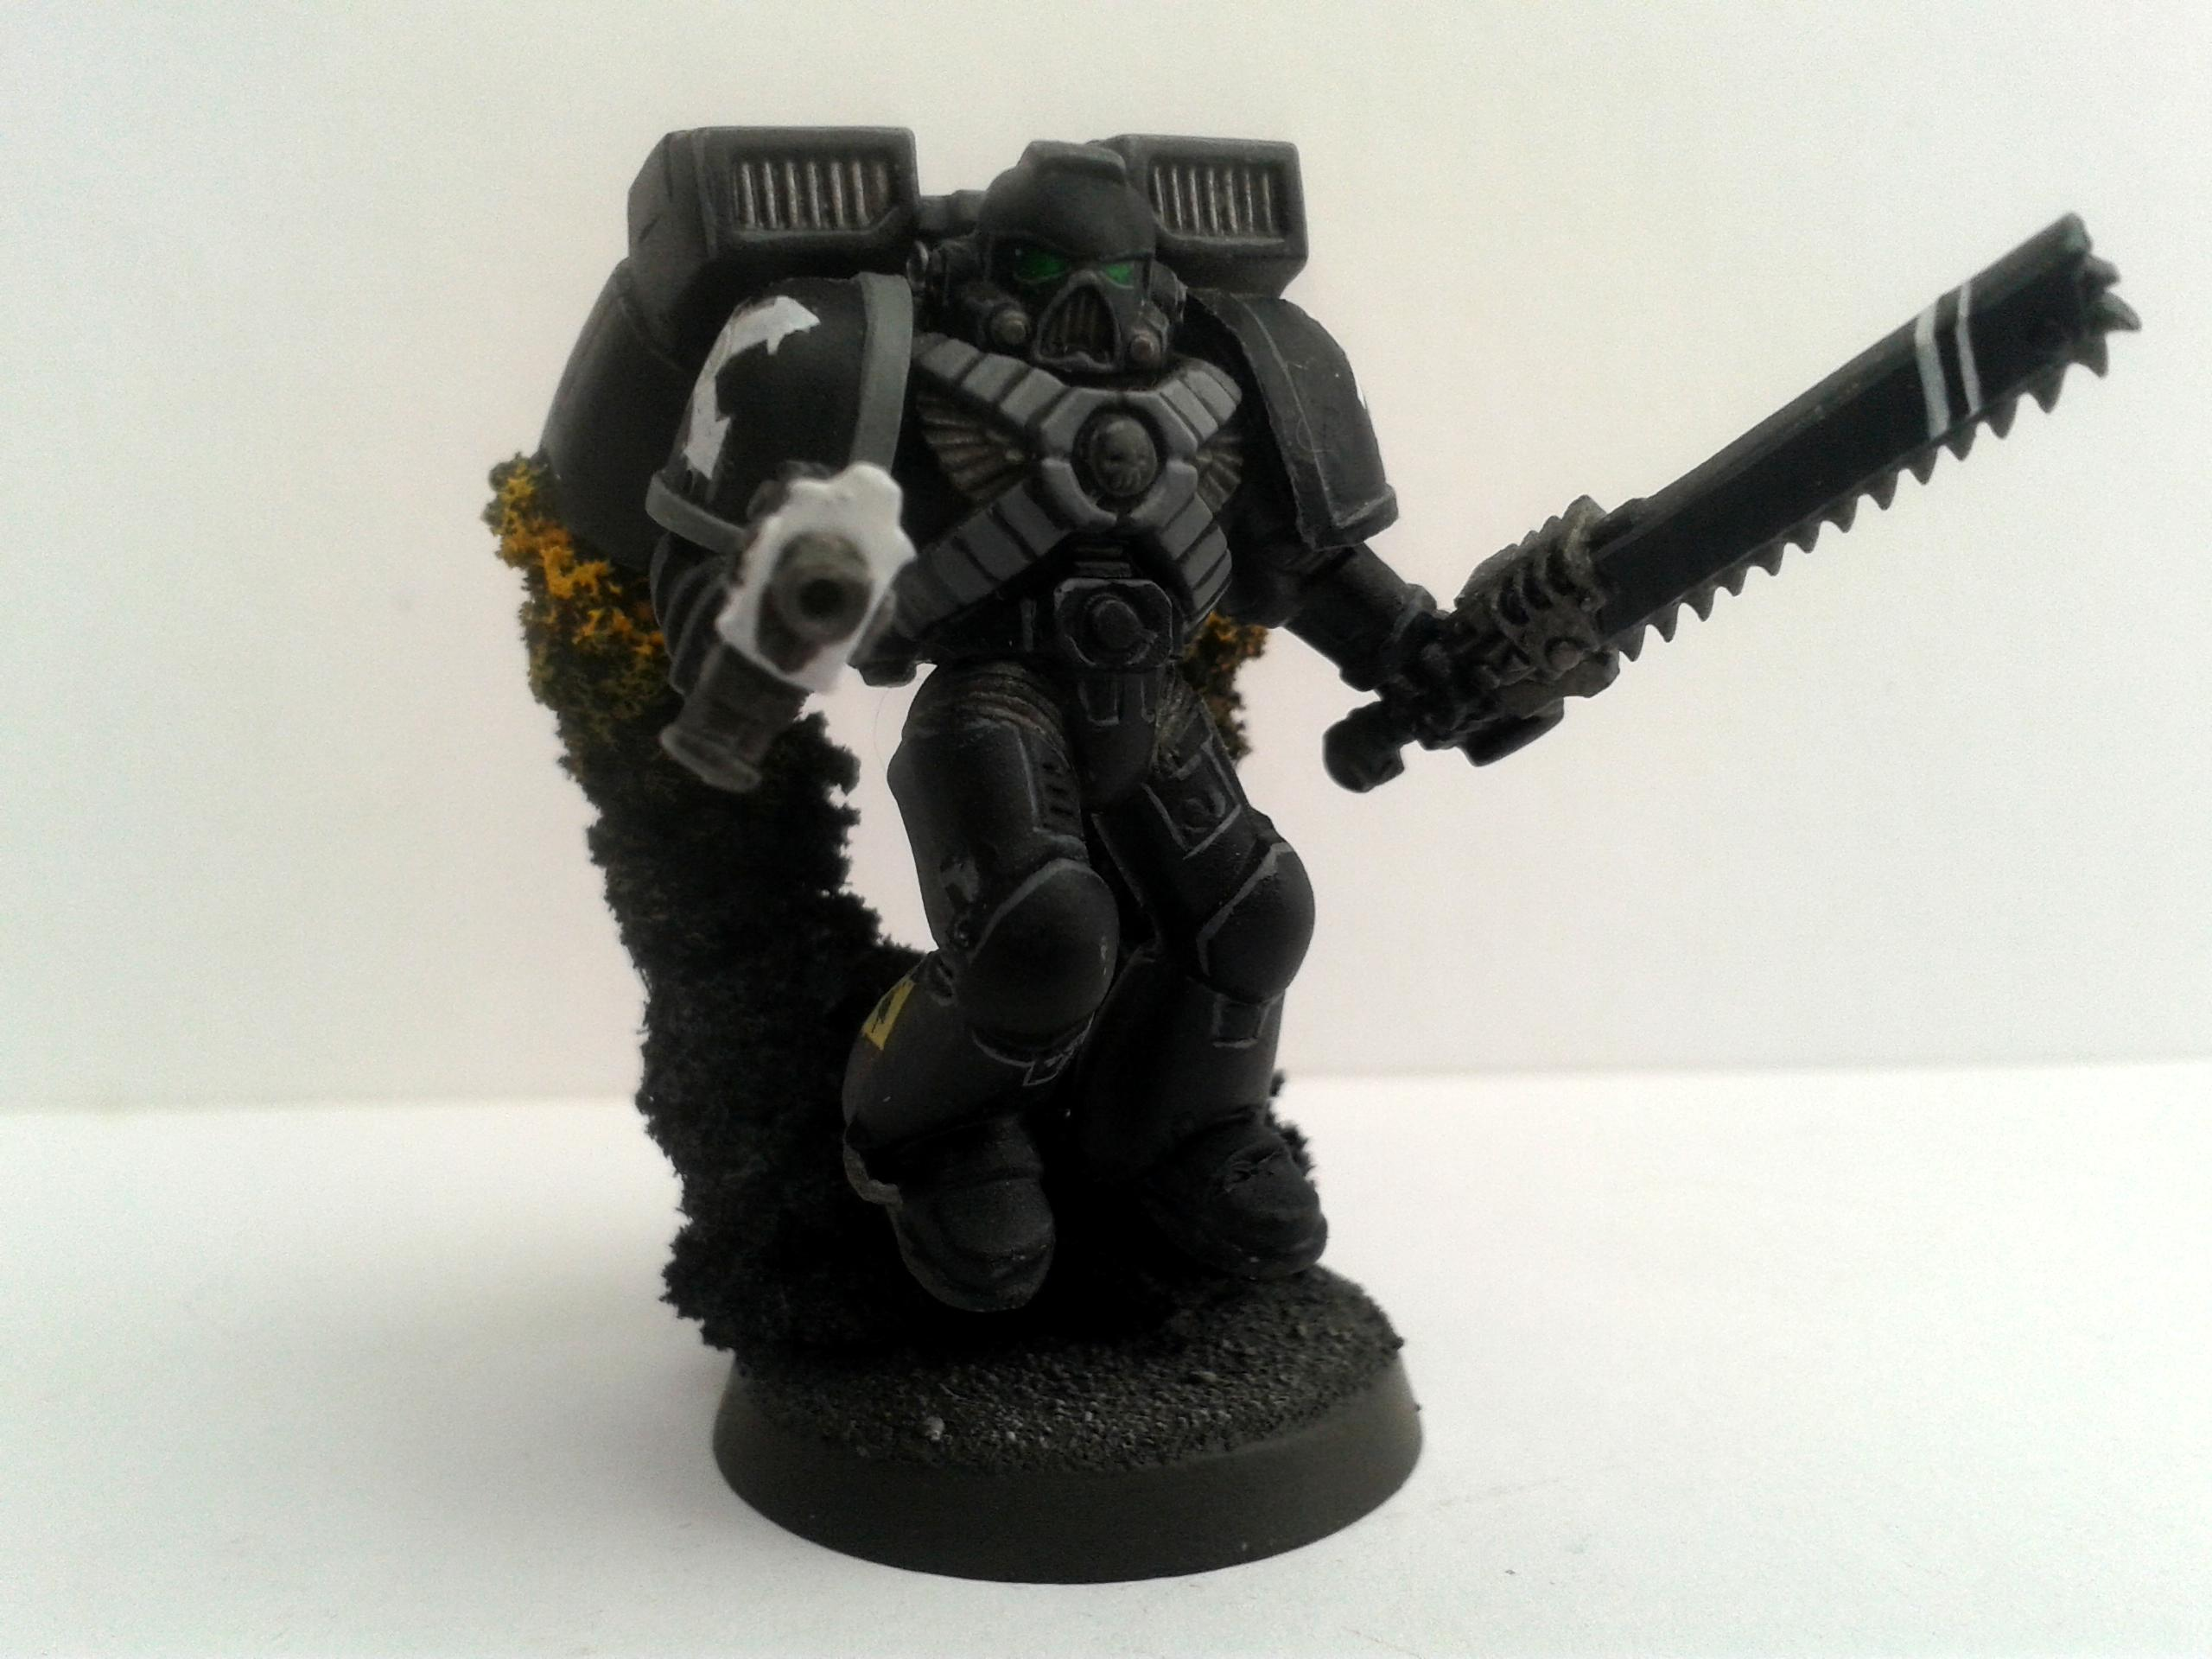 Armor, Army, Assault, Black, Bolt Pistol, Bolter, Boltgun, Captain, Chainsword, Chapter, Combat, Devastator, Dreadnought, Drop, Grey, Guard, Jump, Land, Librarian, Pack, Pod, Power, Raven, Rhino, Scouts, Space, Space Marines, Speeder, Squad, Sternguard, Storm, Tactical, Tactics, Talon, Vanguard, Veteran, Warhammer 40,000, Warhammer Fantasy, Yellow